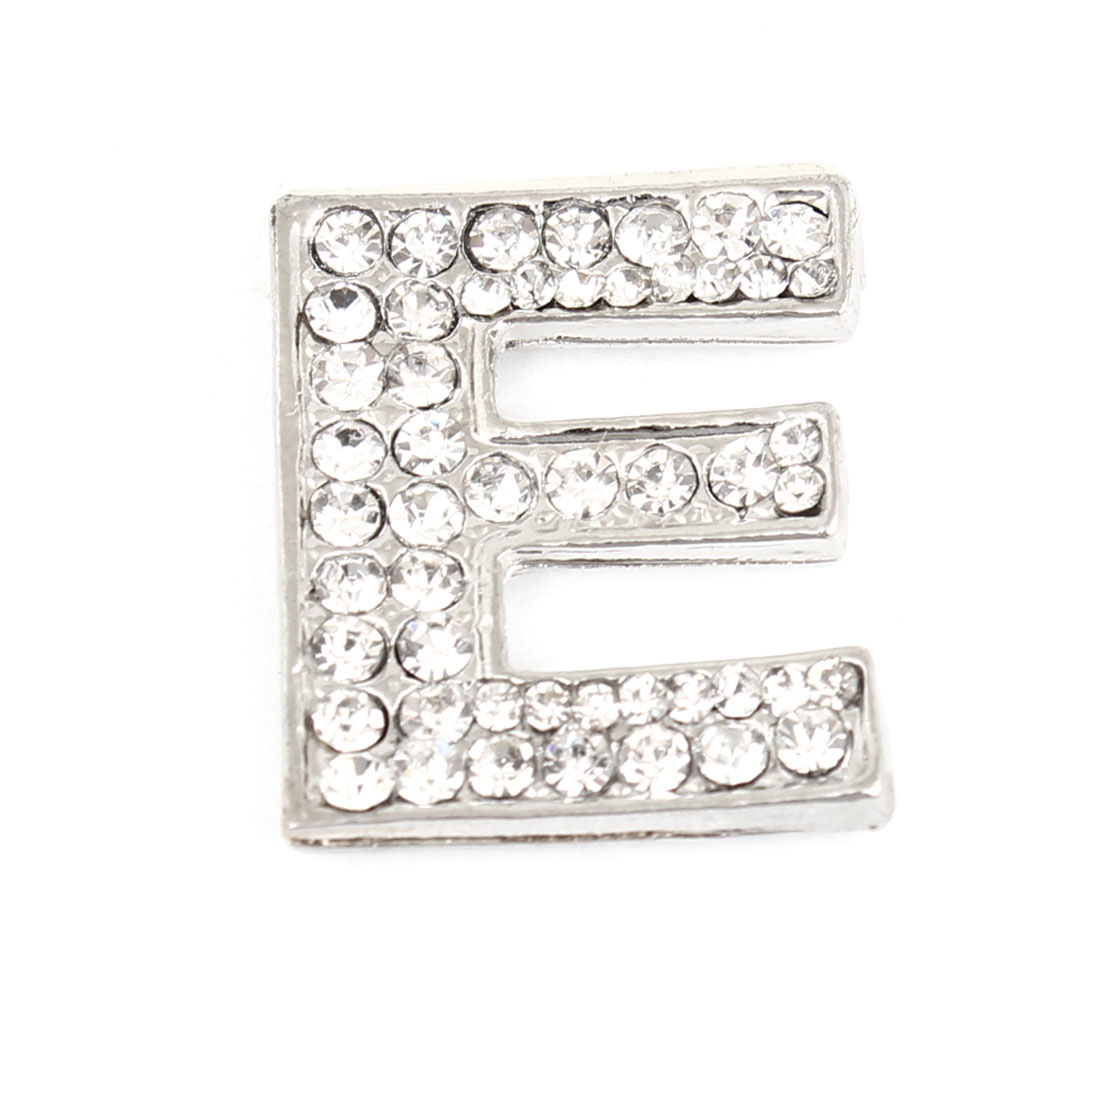 Letter E Shape Rhinestones Metal Decorative Adhesive Sticker for Automobile Car